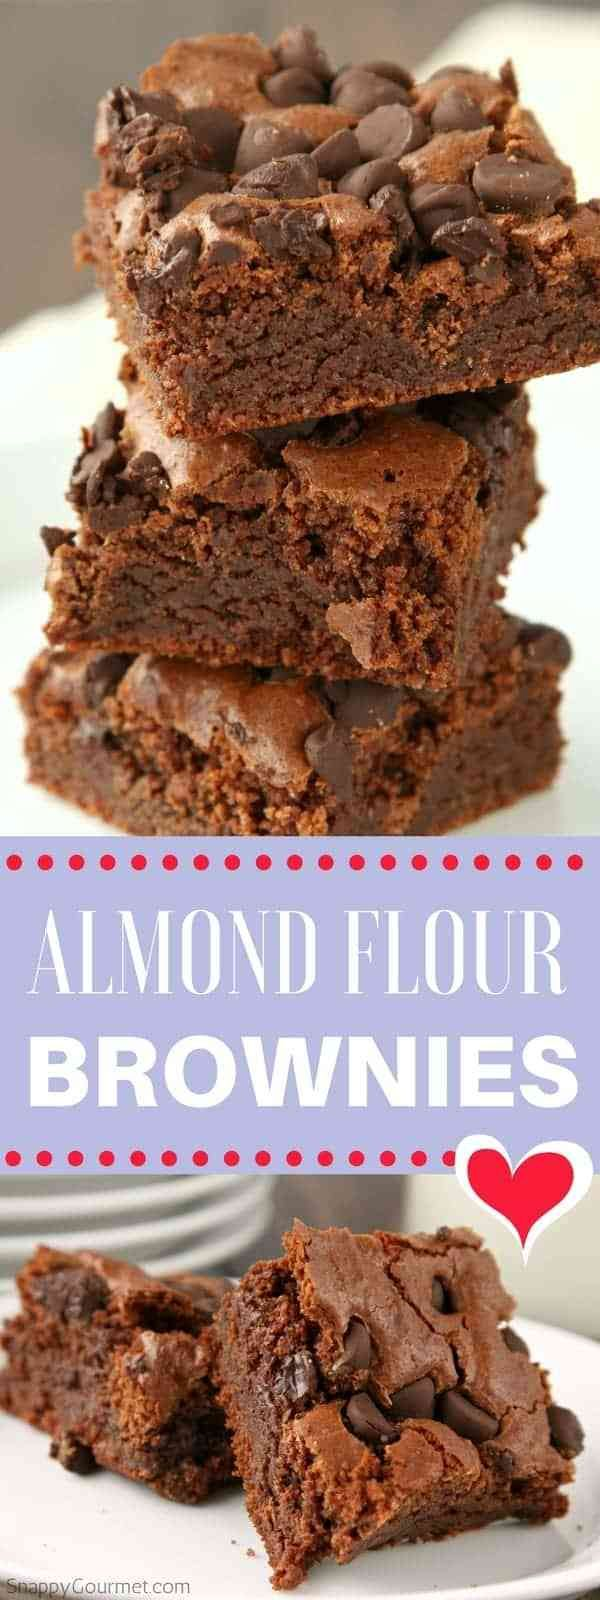 Almond Flour Brownies Recipe (Gluten-Free) - Snappy Gourmet